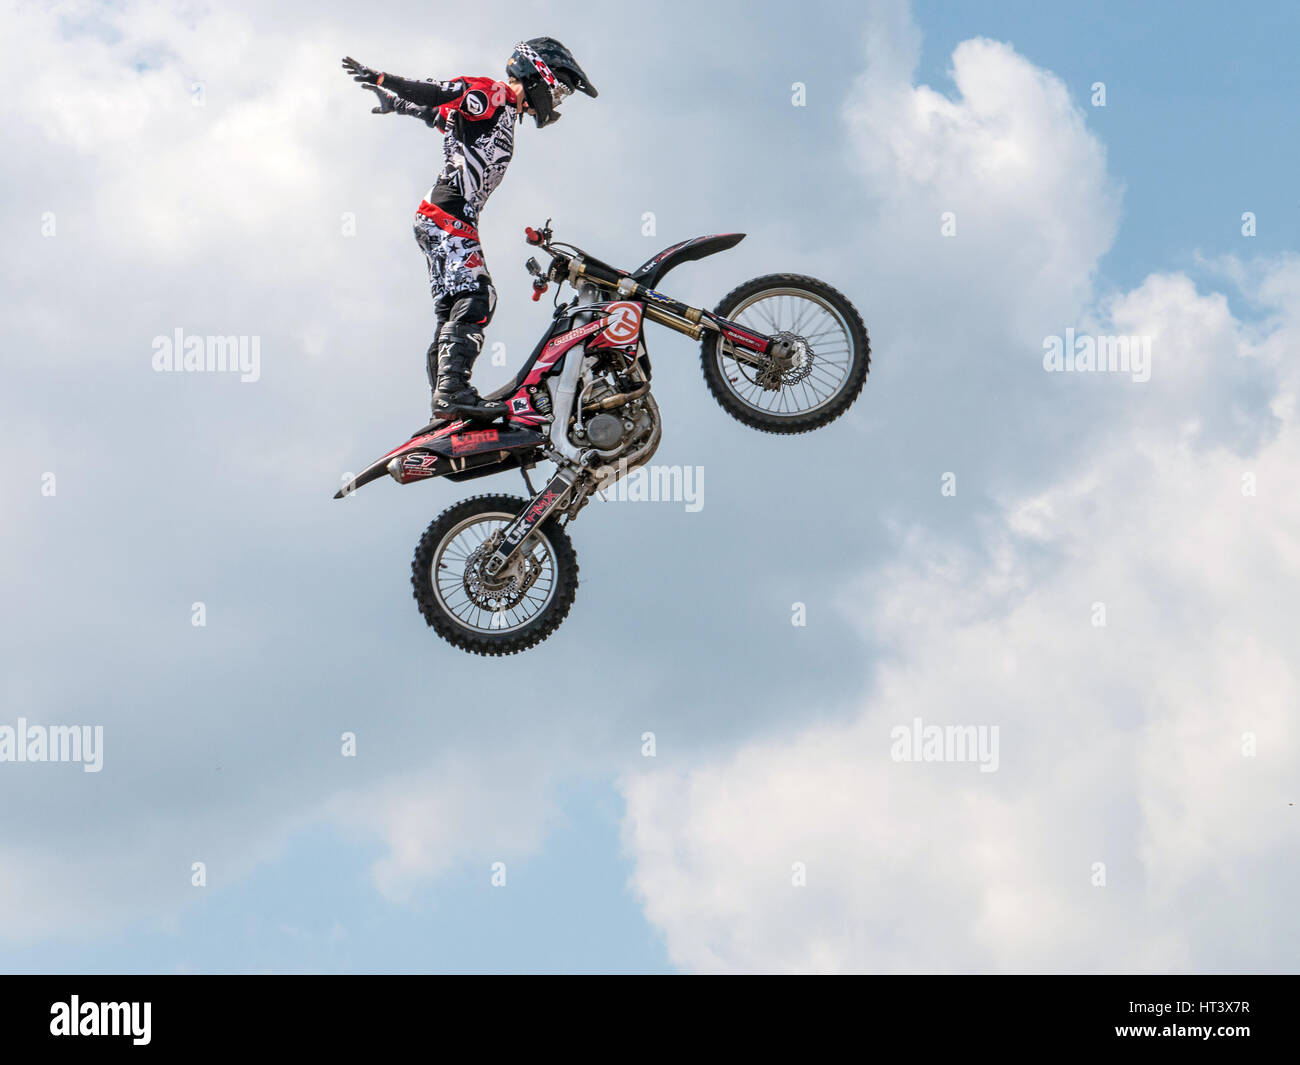 Freestyle Moto-Cross stunt motorcycling 2013 Artist: Unknown. - Stock Image